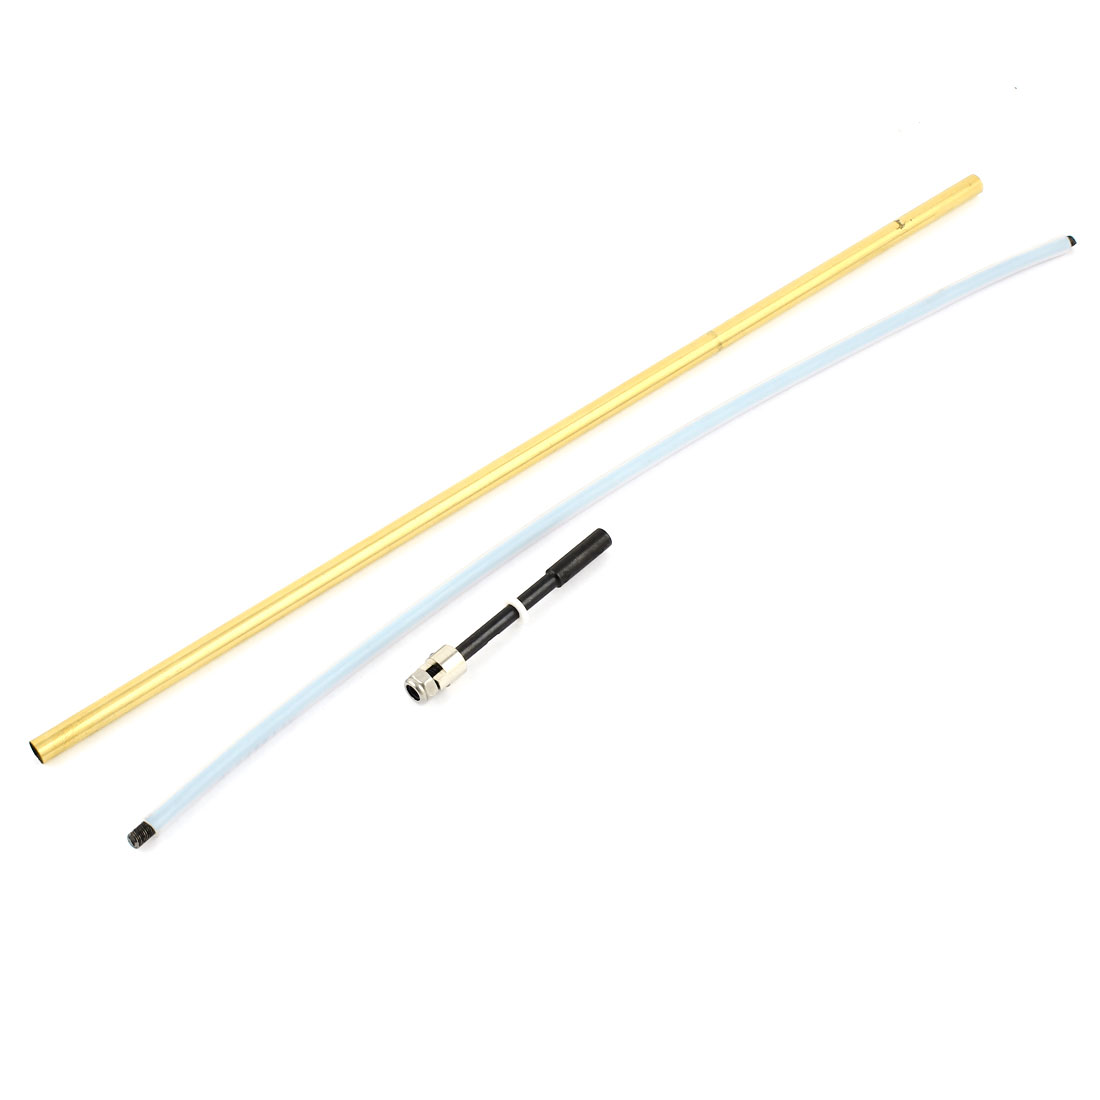 4mm Dia 300mm Length RC Model Ship Flexible Cable Drive Shaft Dog Prop Nut Brass Tube Replacement